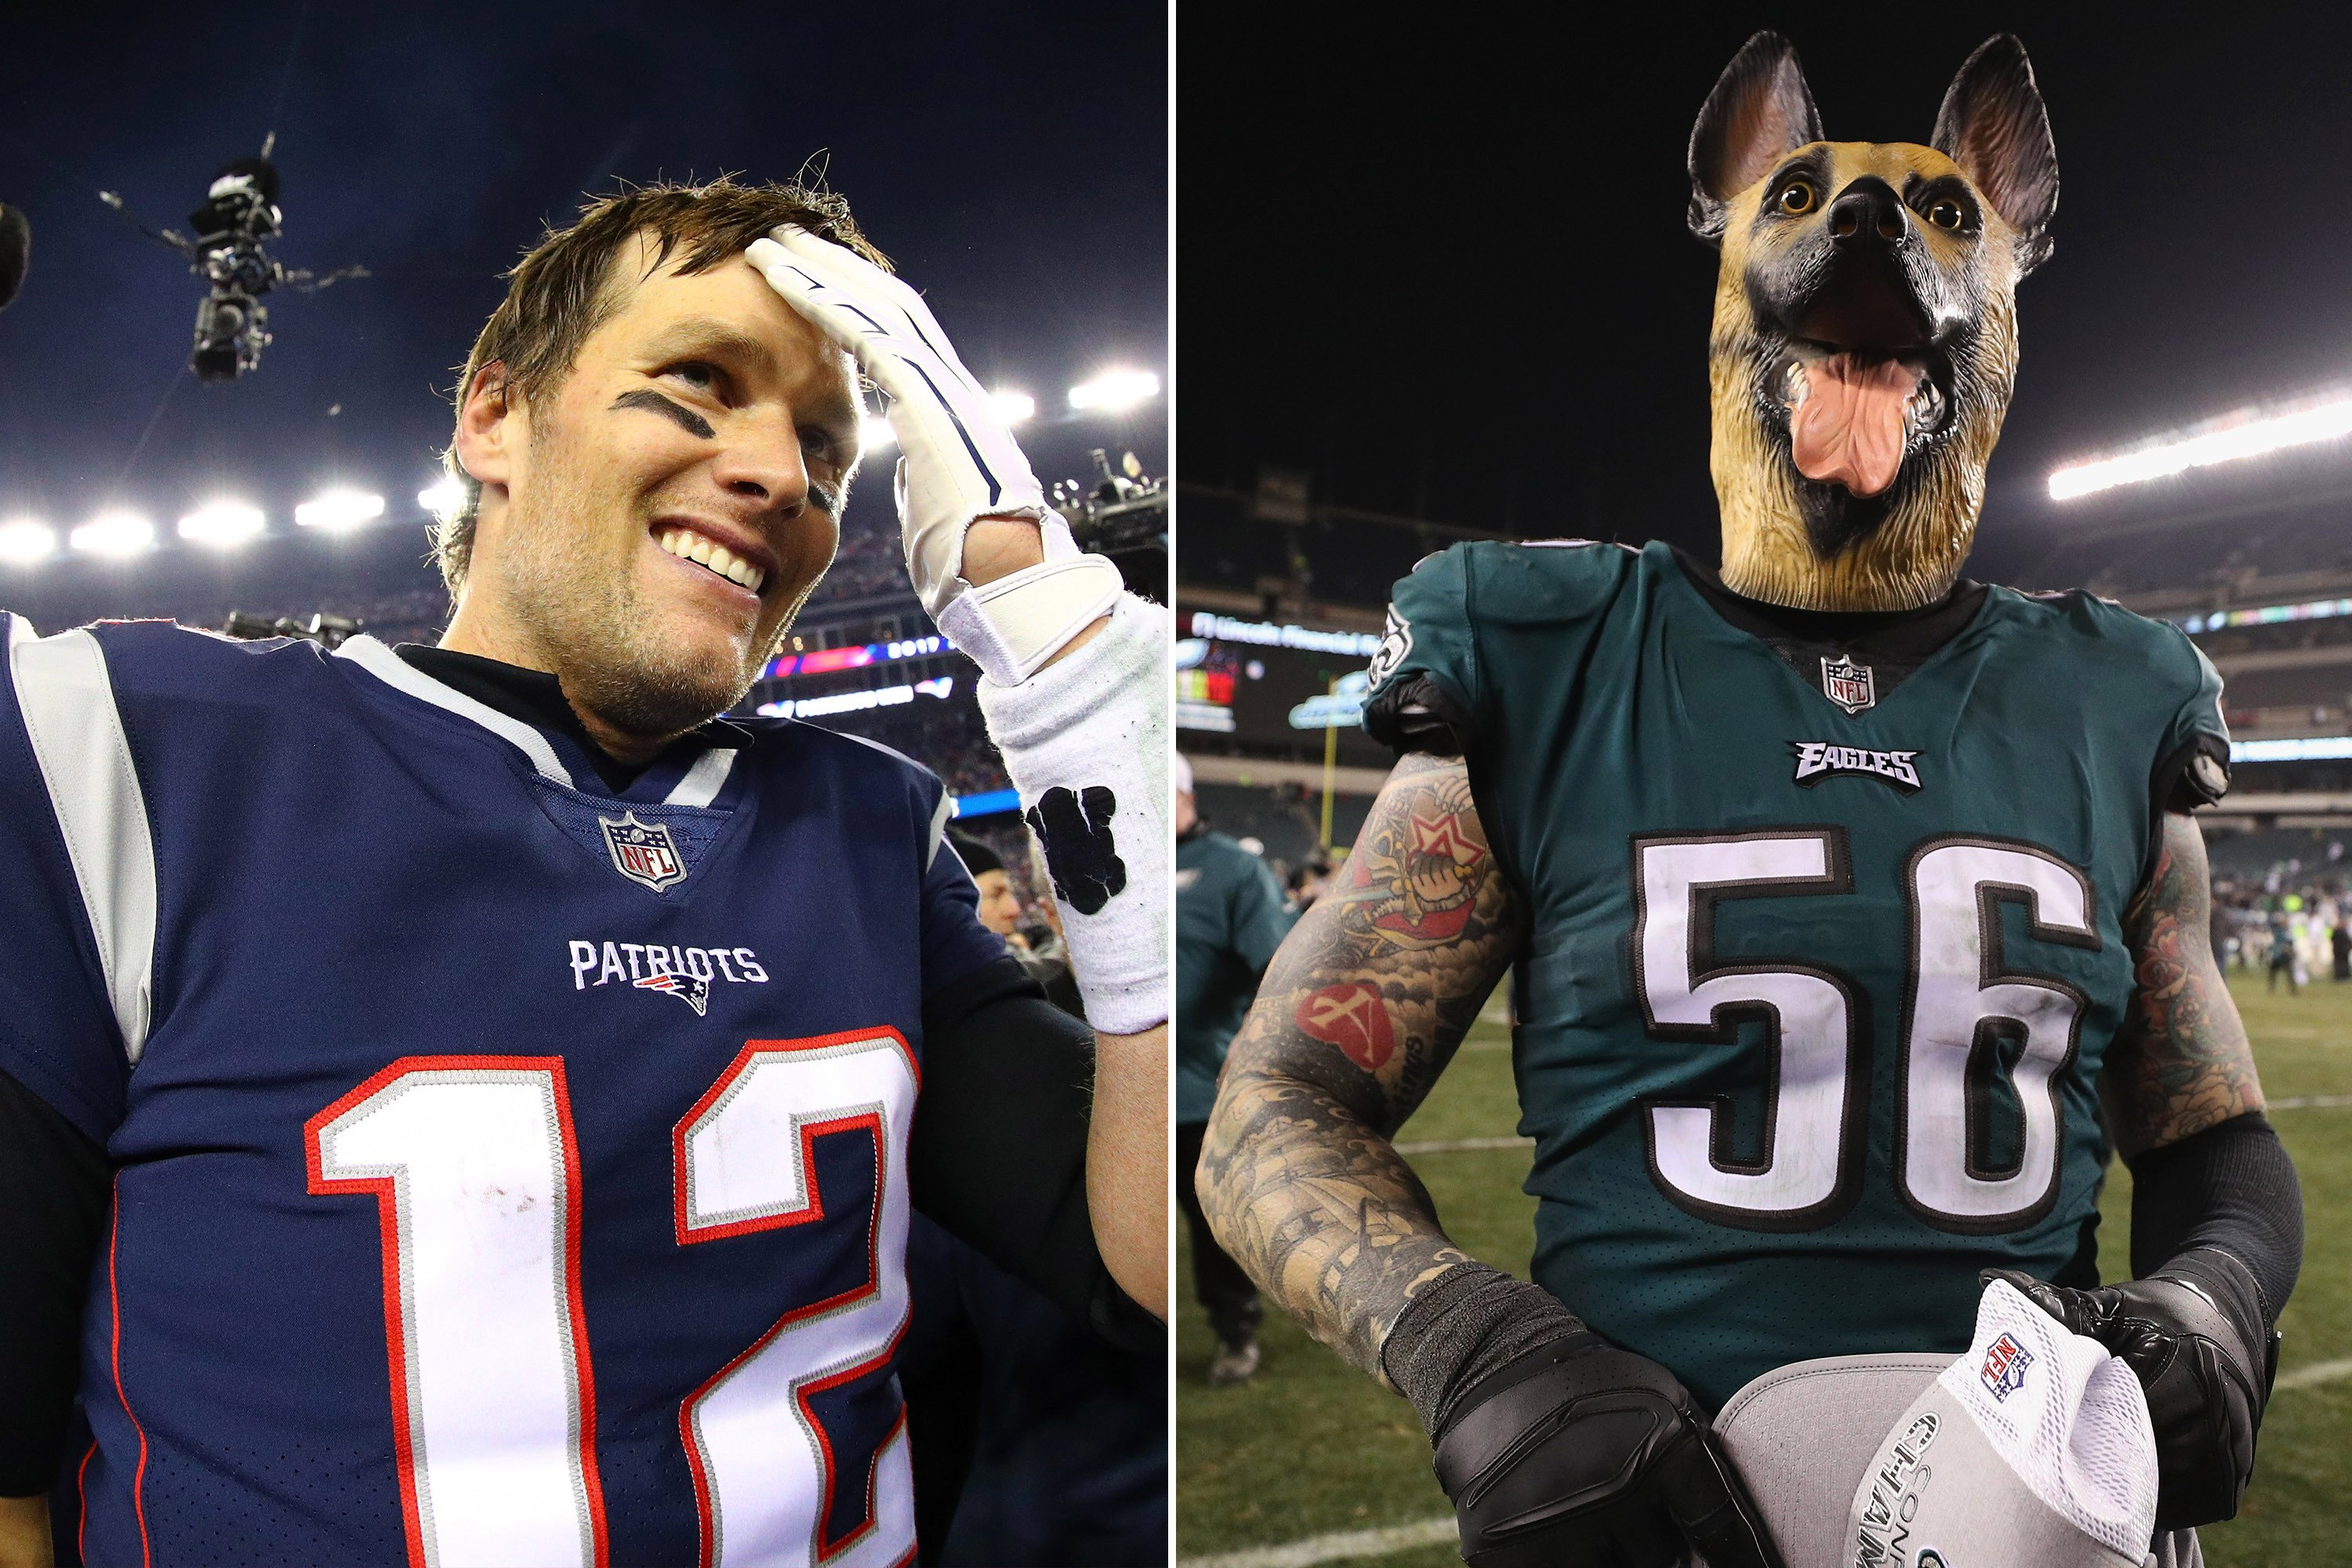 Fearless Eagles nation relishes ultimate underdog Super Bowl